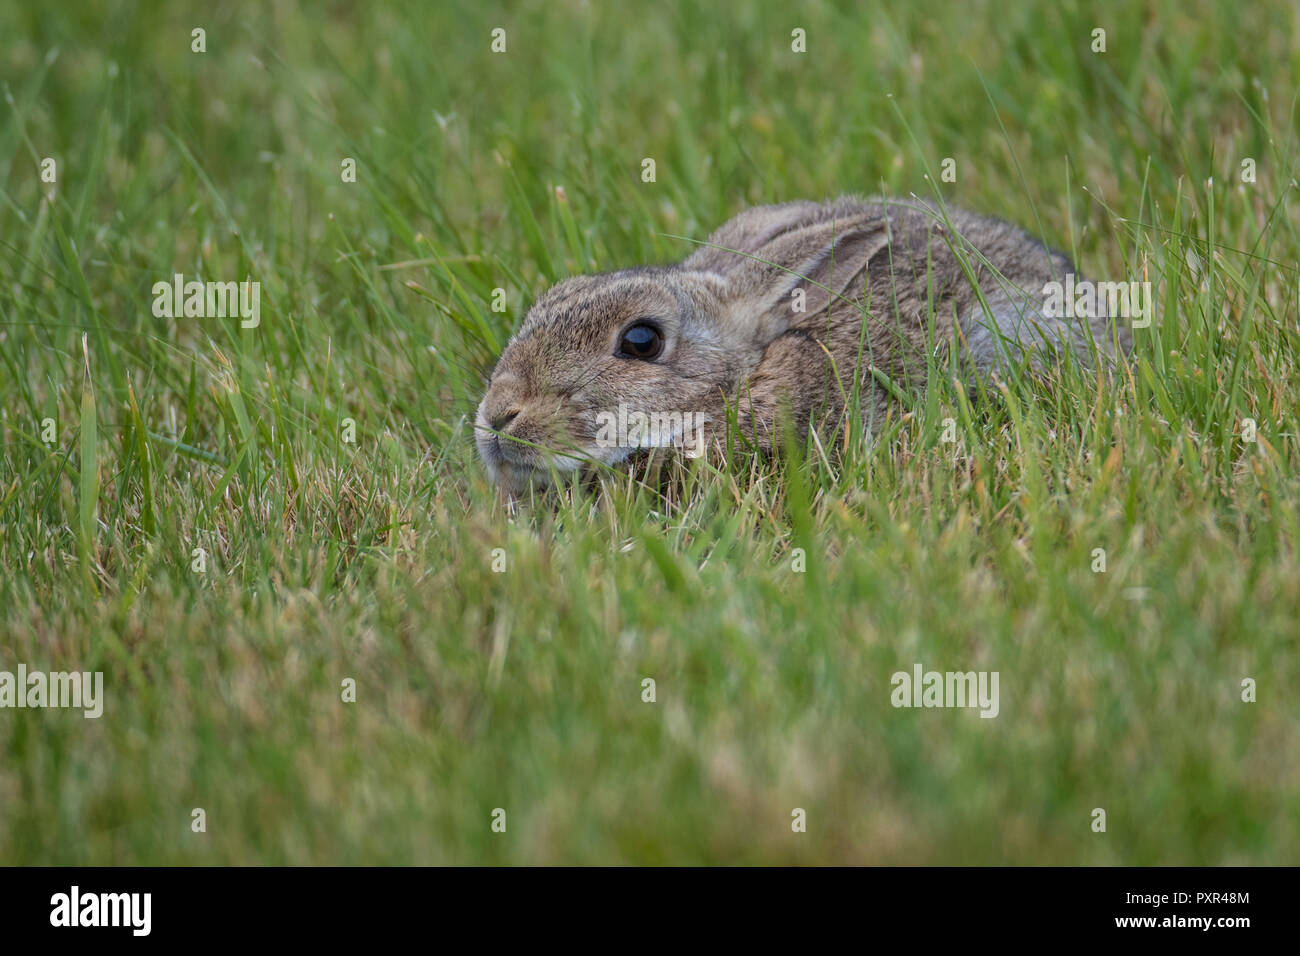 European Rabbit (Oryctolagus cuniculus) crouched down in grass, Shetland, Scotland, UK - Stock Image